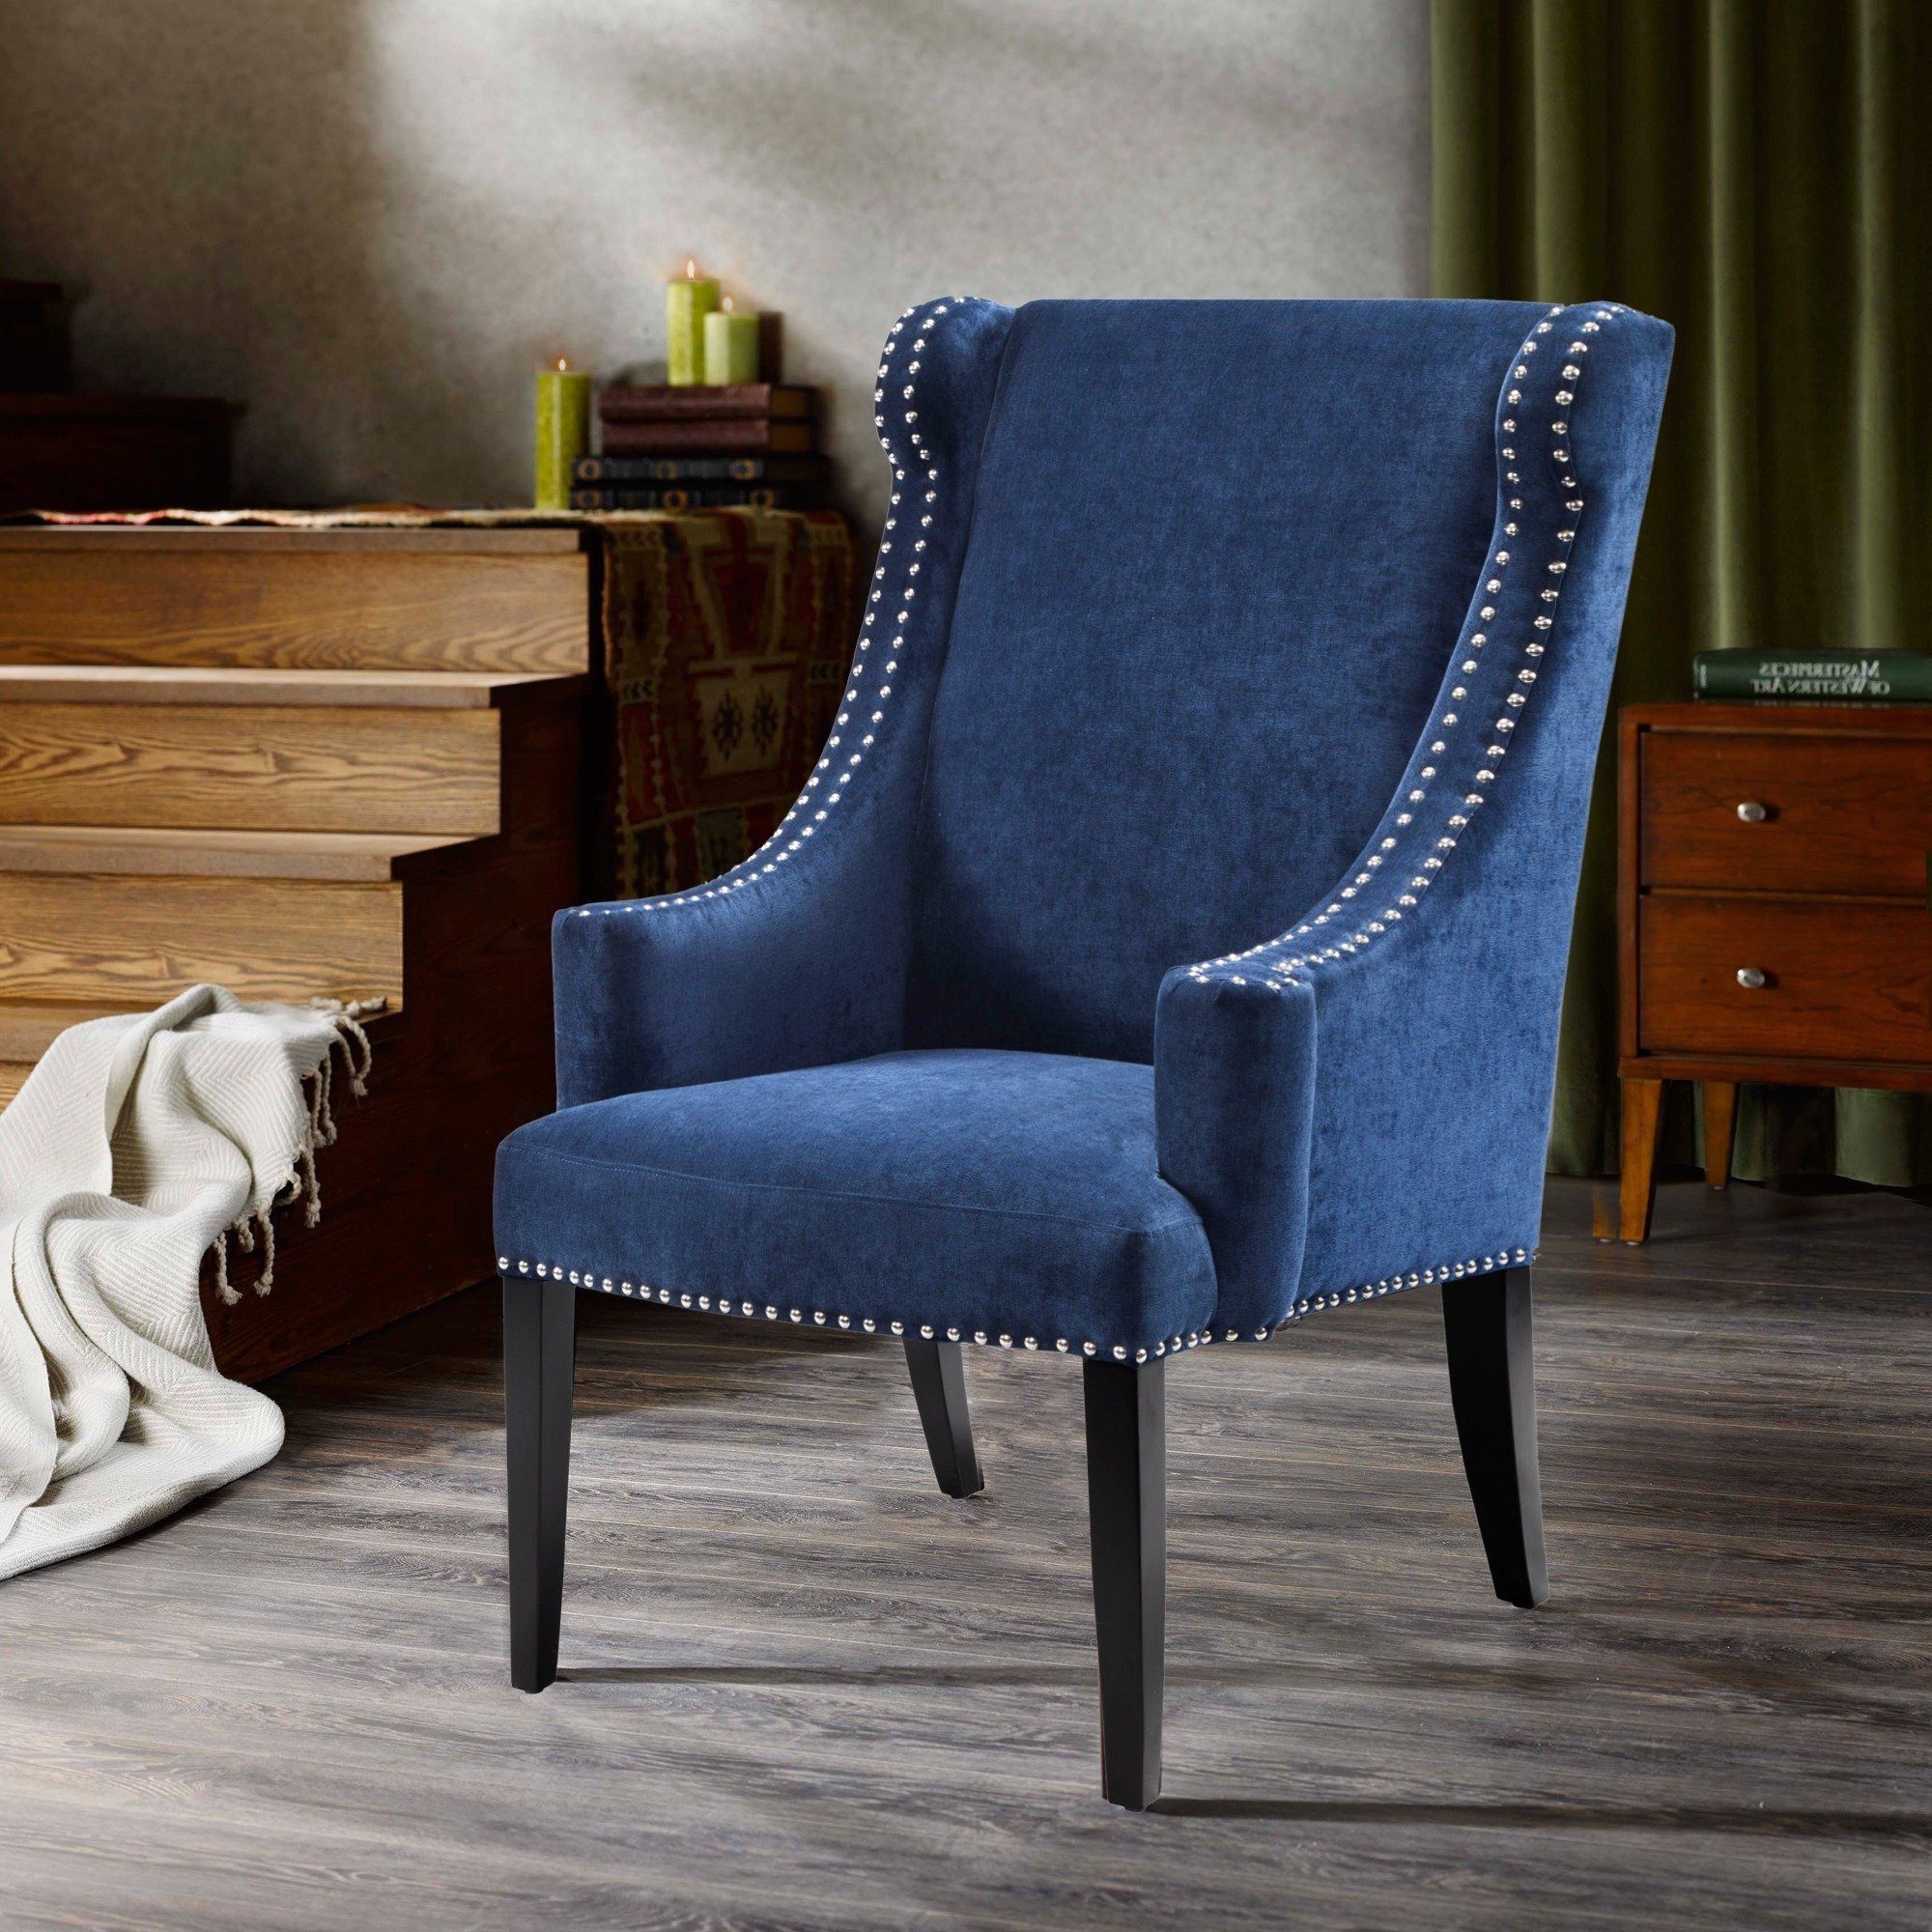 Lucy Grey Sofa Chairs Intended For Most Popular Shop Madison Park Lucy Blue High Back Wing Chair – Free Shipping (View 10 of 20)